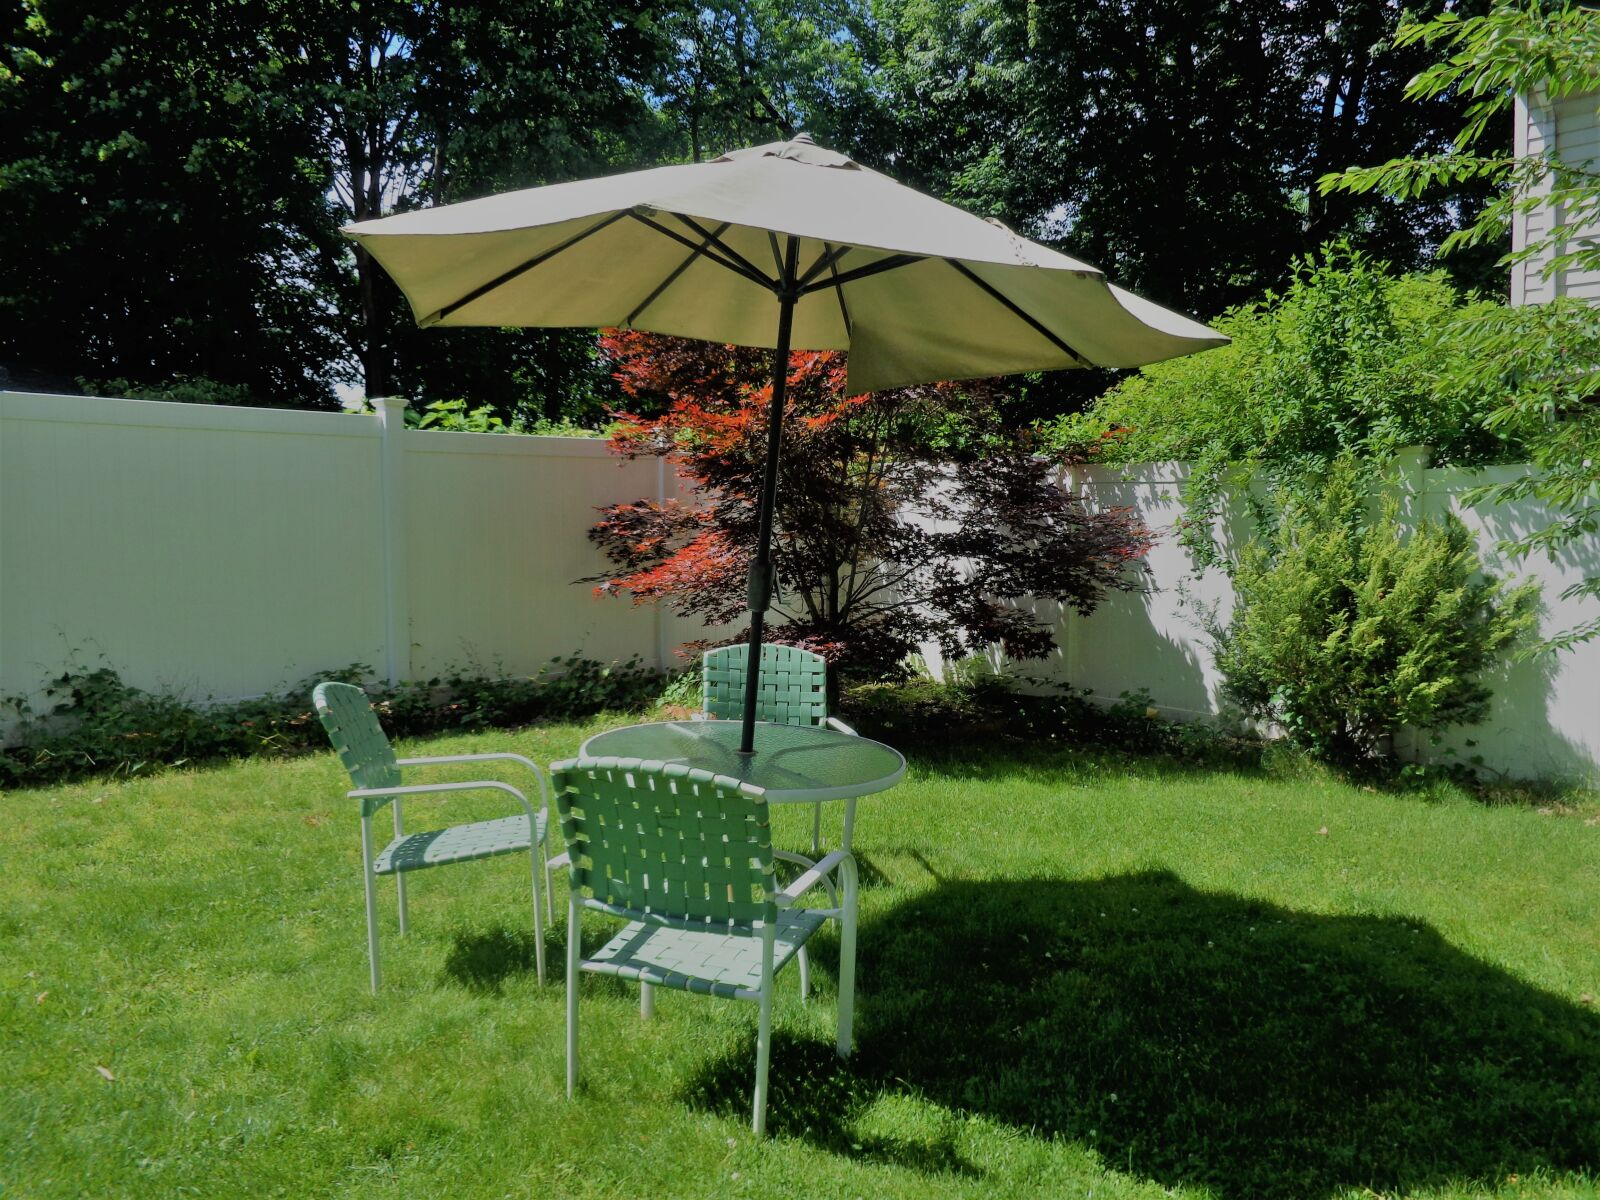 """Sony DSC-W690 sample photo. """"Lawn, lawn chairs, summer"""" photography"""